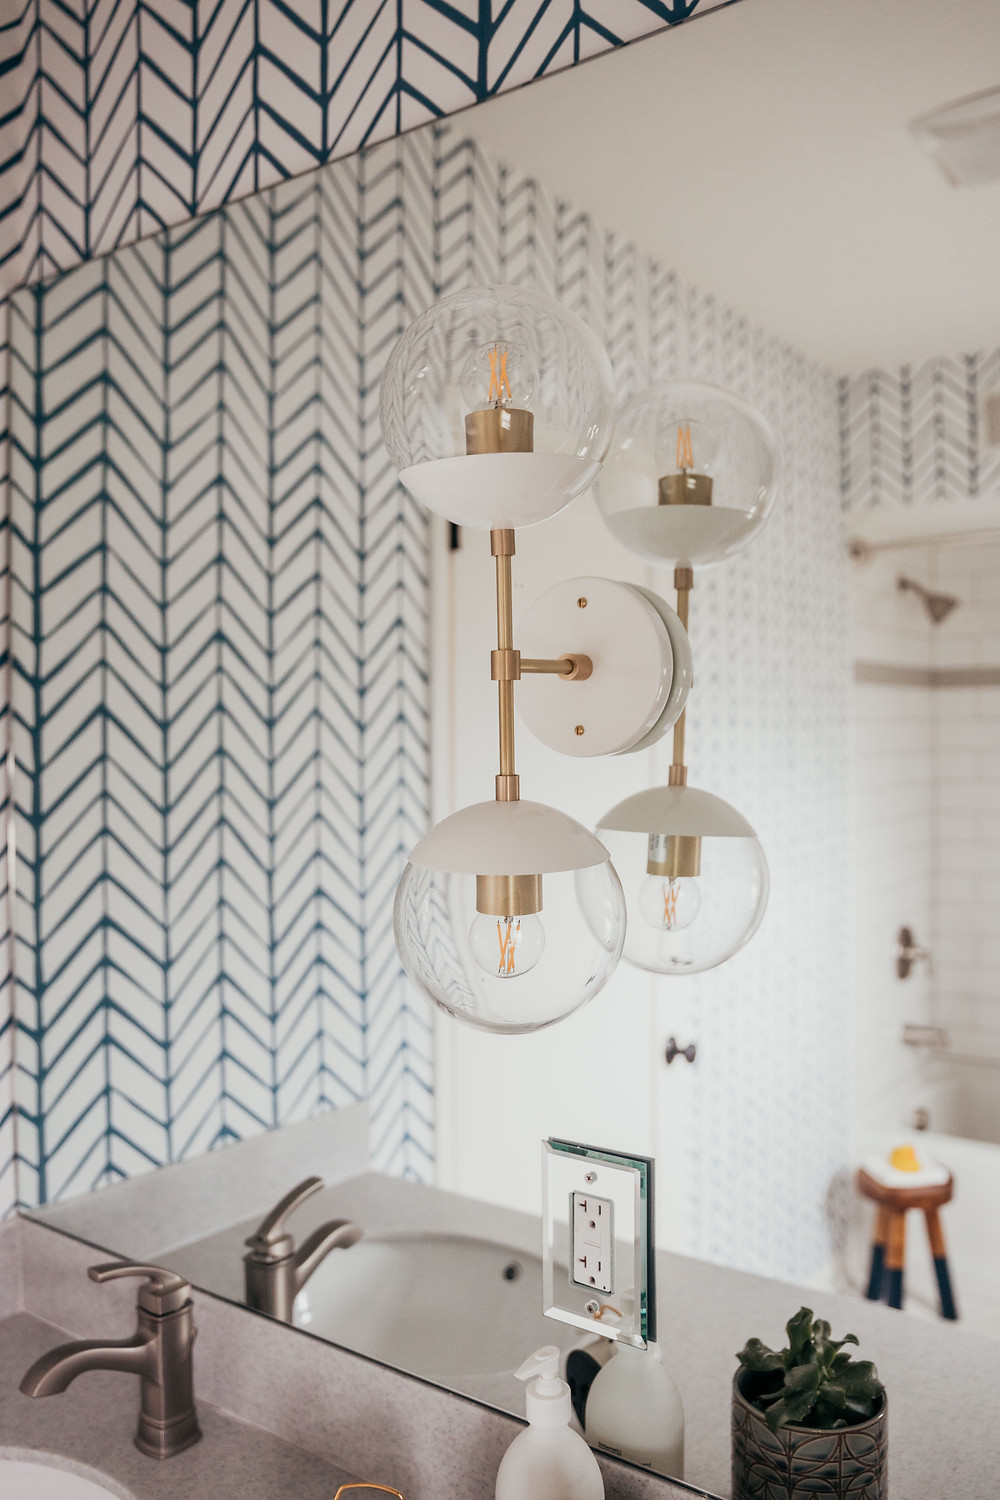 Wall sconce installed on bathroom mirror